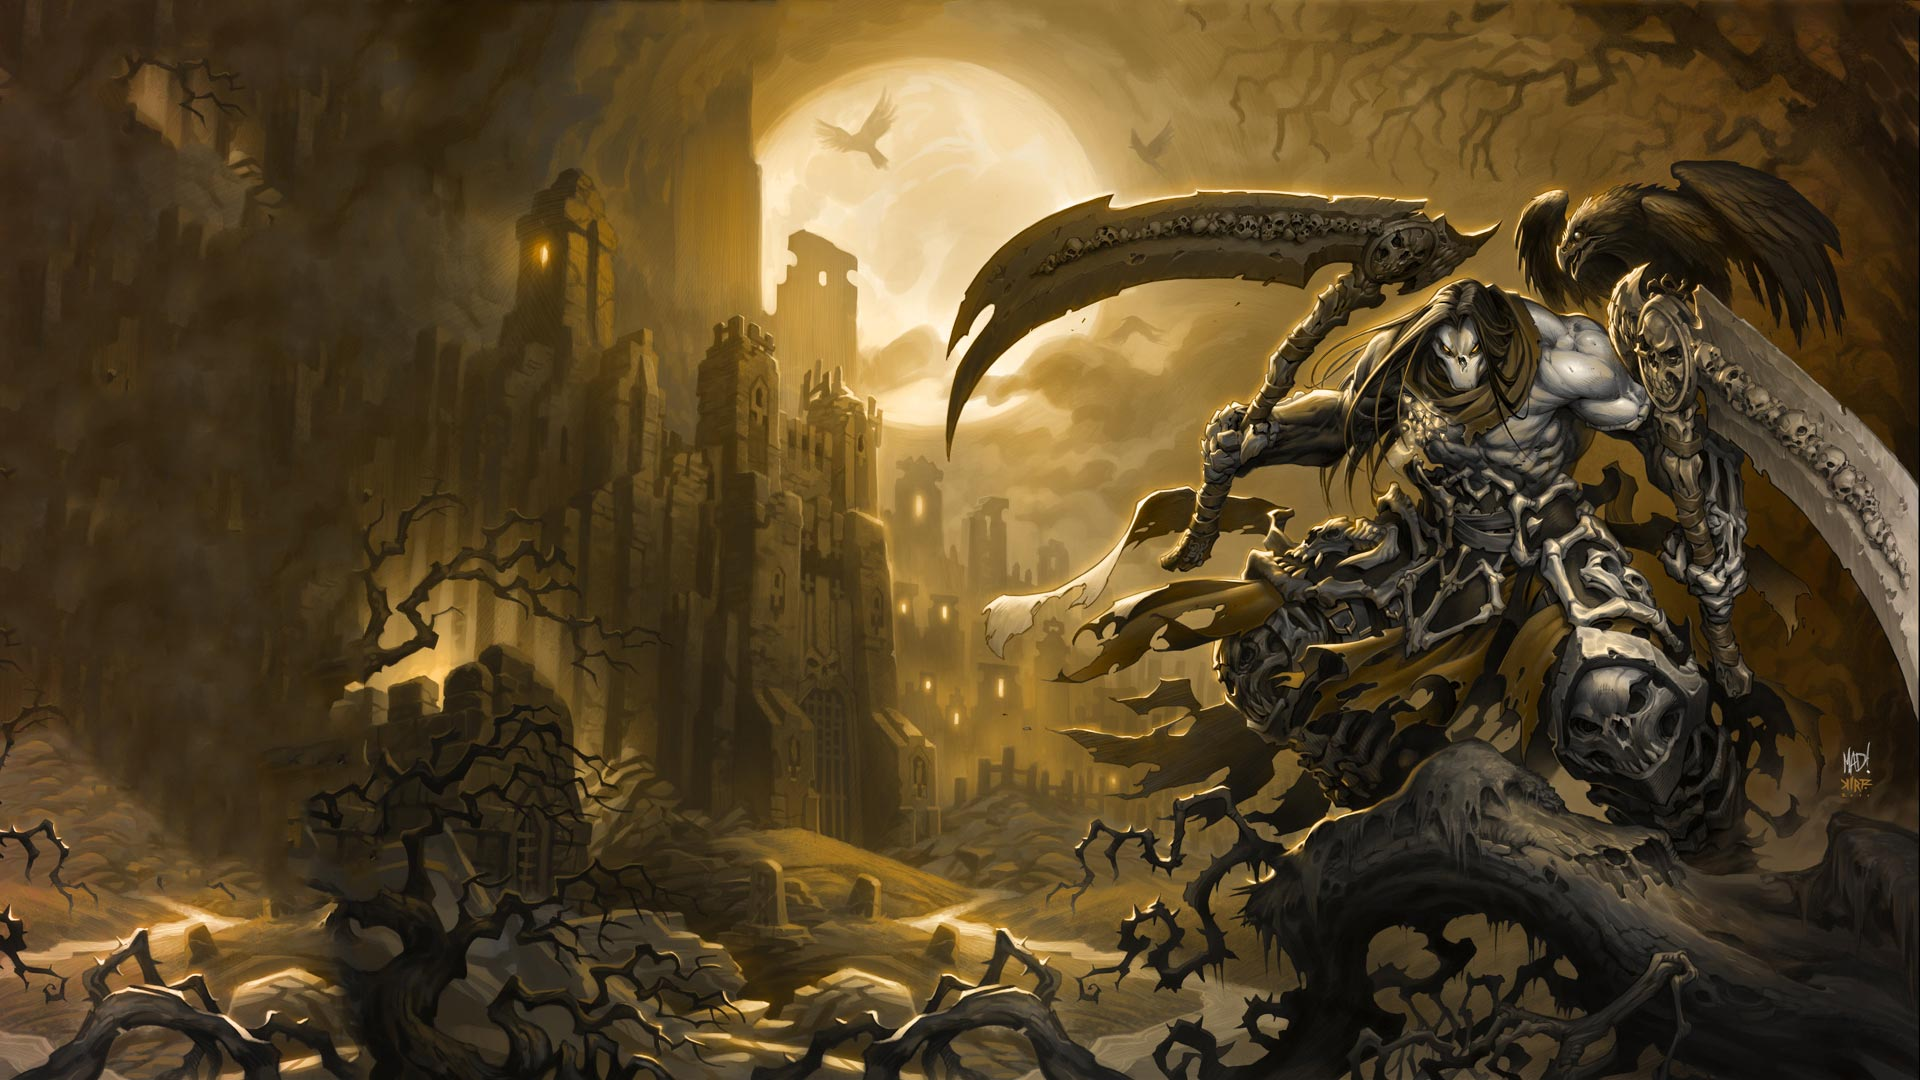 Download Darksiders Wallpaper 1 1920x1080